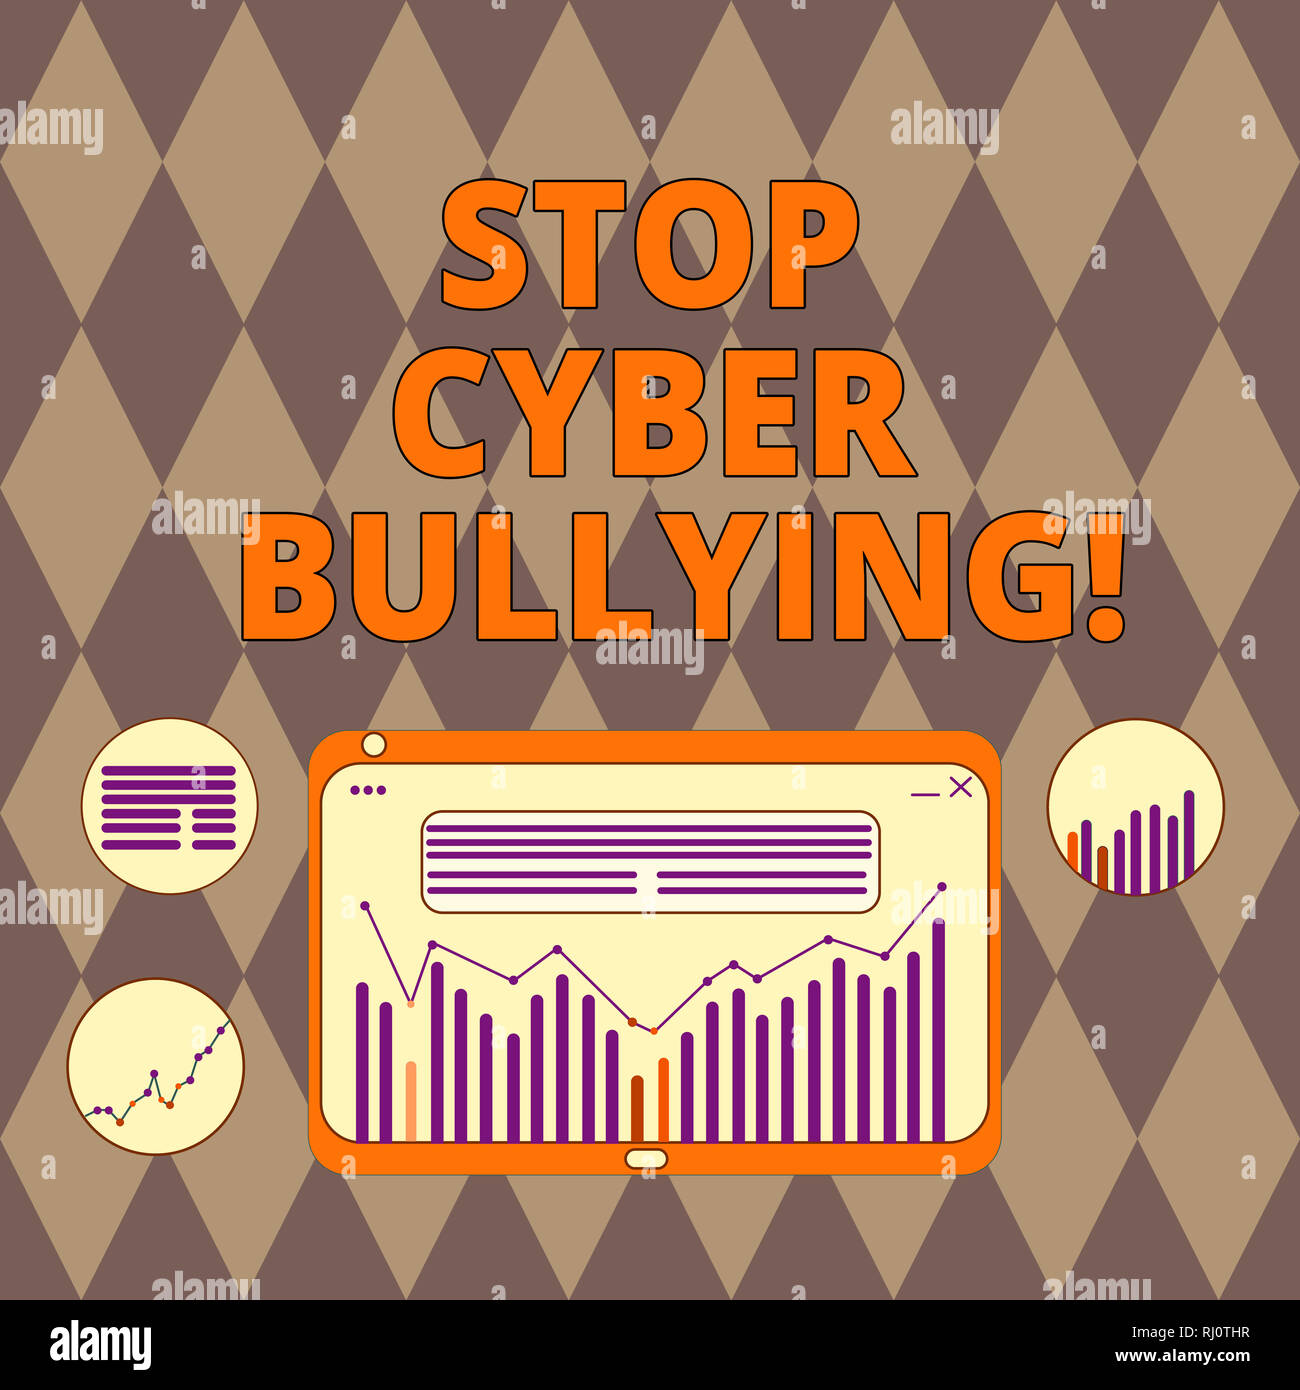 Cyber Bullying Stock Photos & Cyber Bullying Stock Images - Alamy